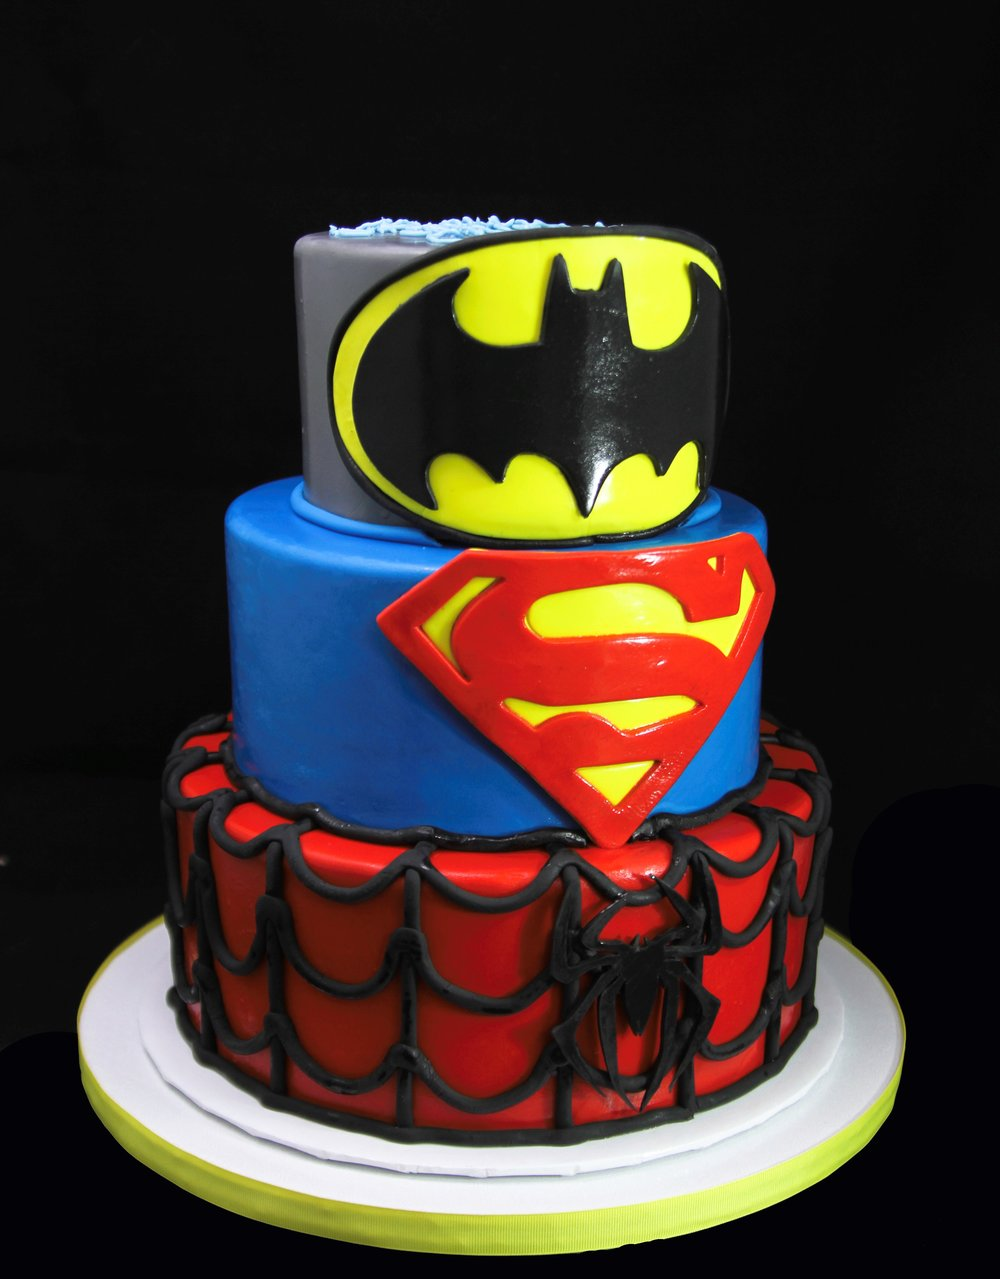 Superhero Cake fixed.jpg